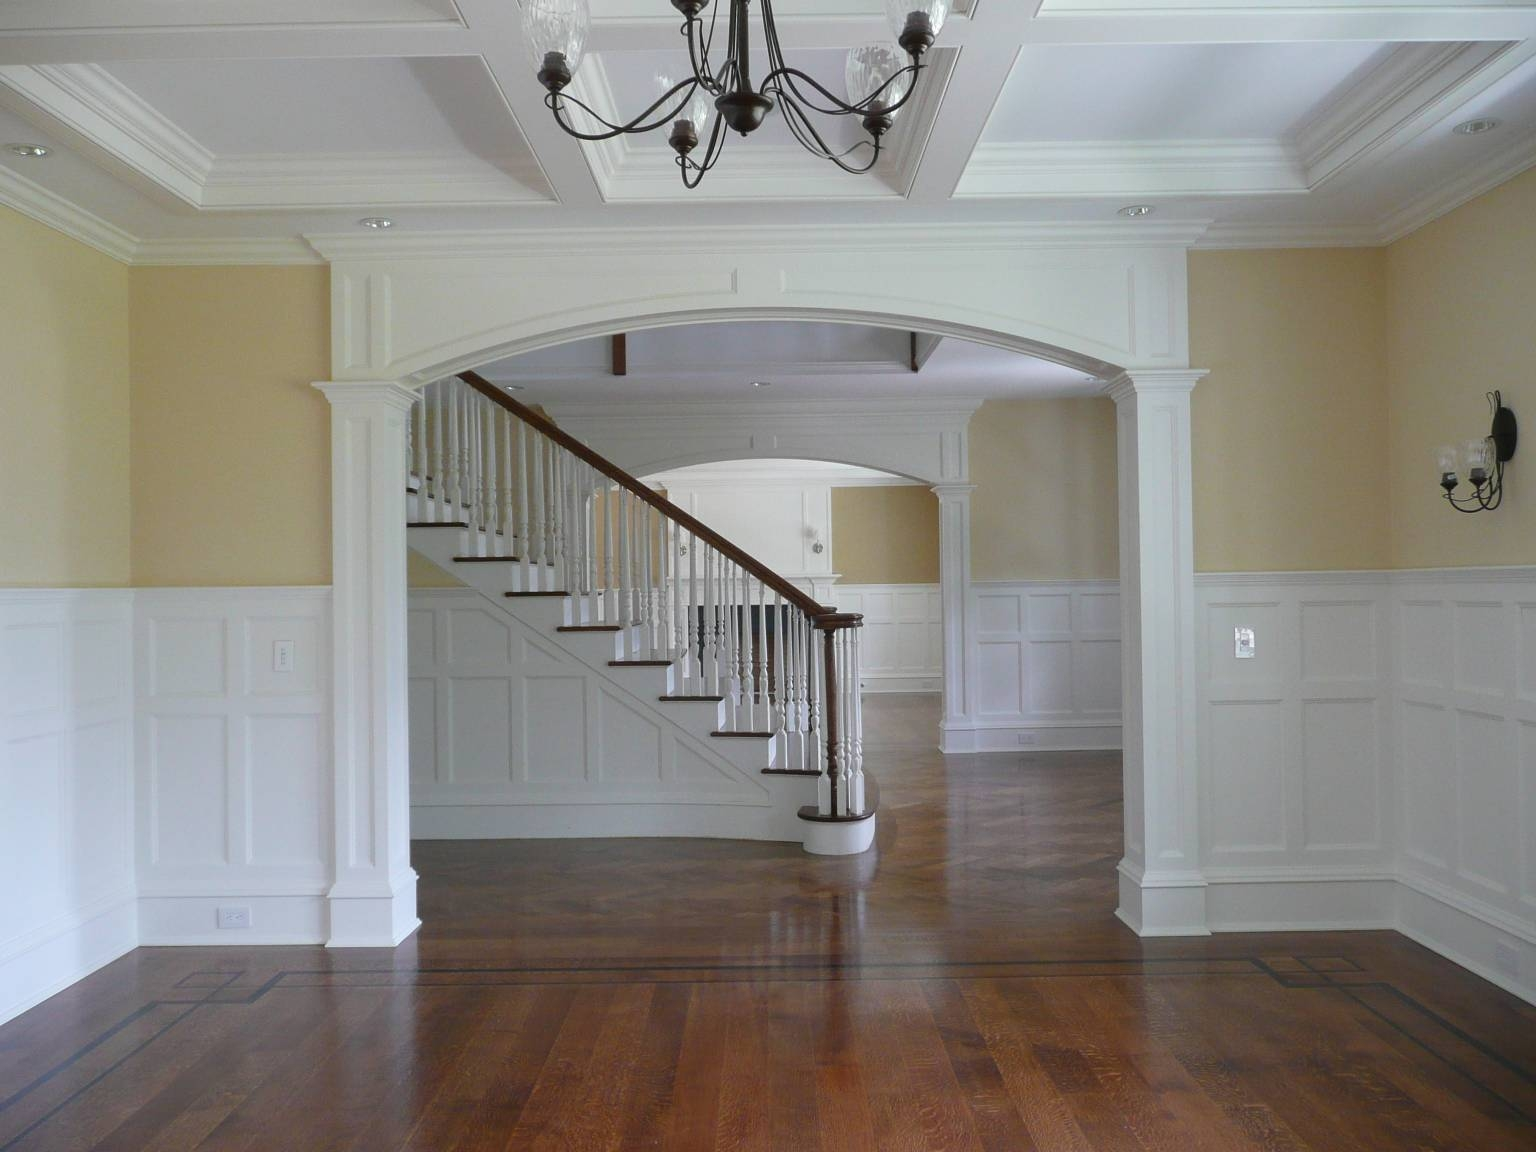 Wainscot solutions inc custom assembled wainscoting - Let Us Help Custom